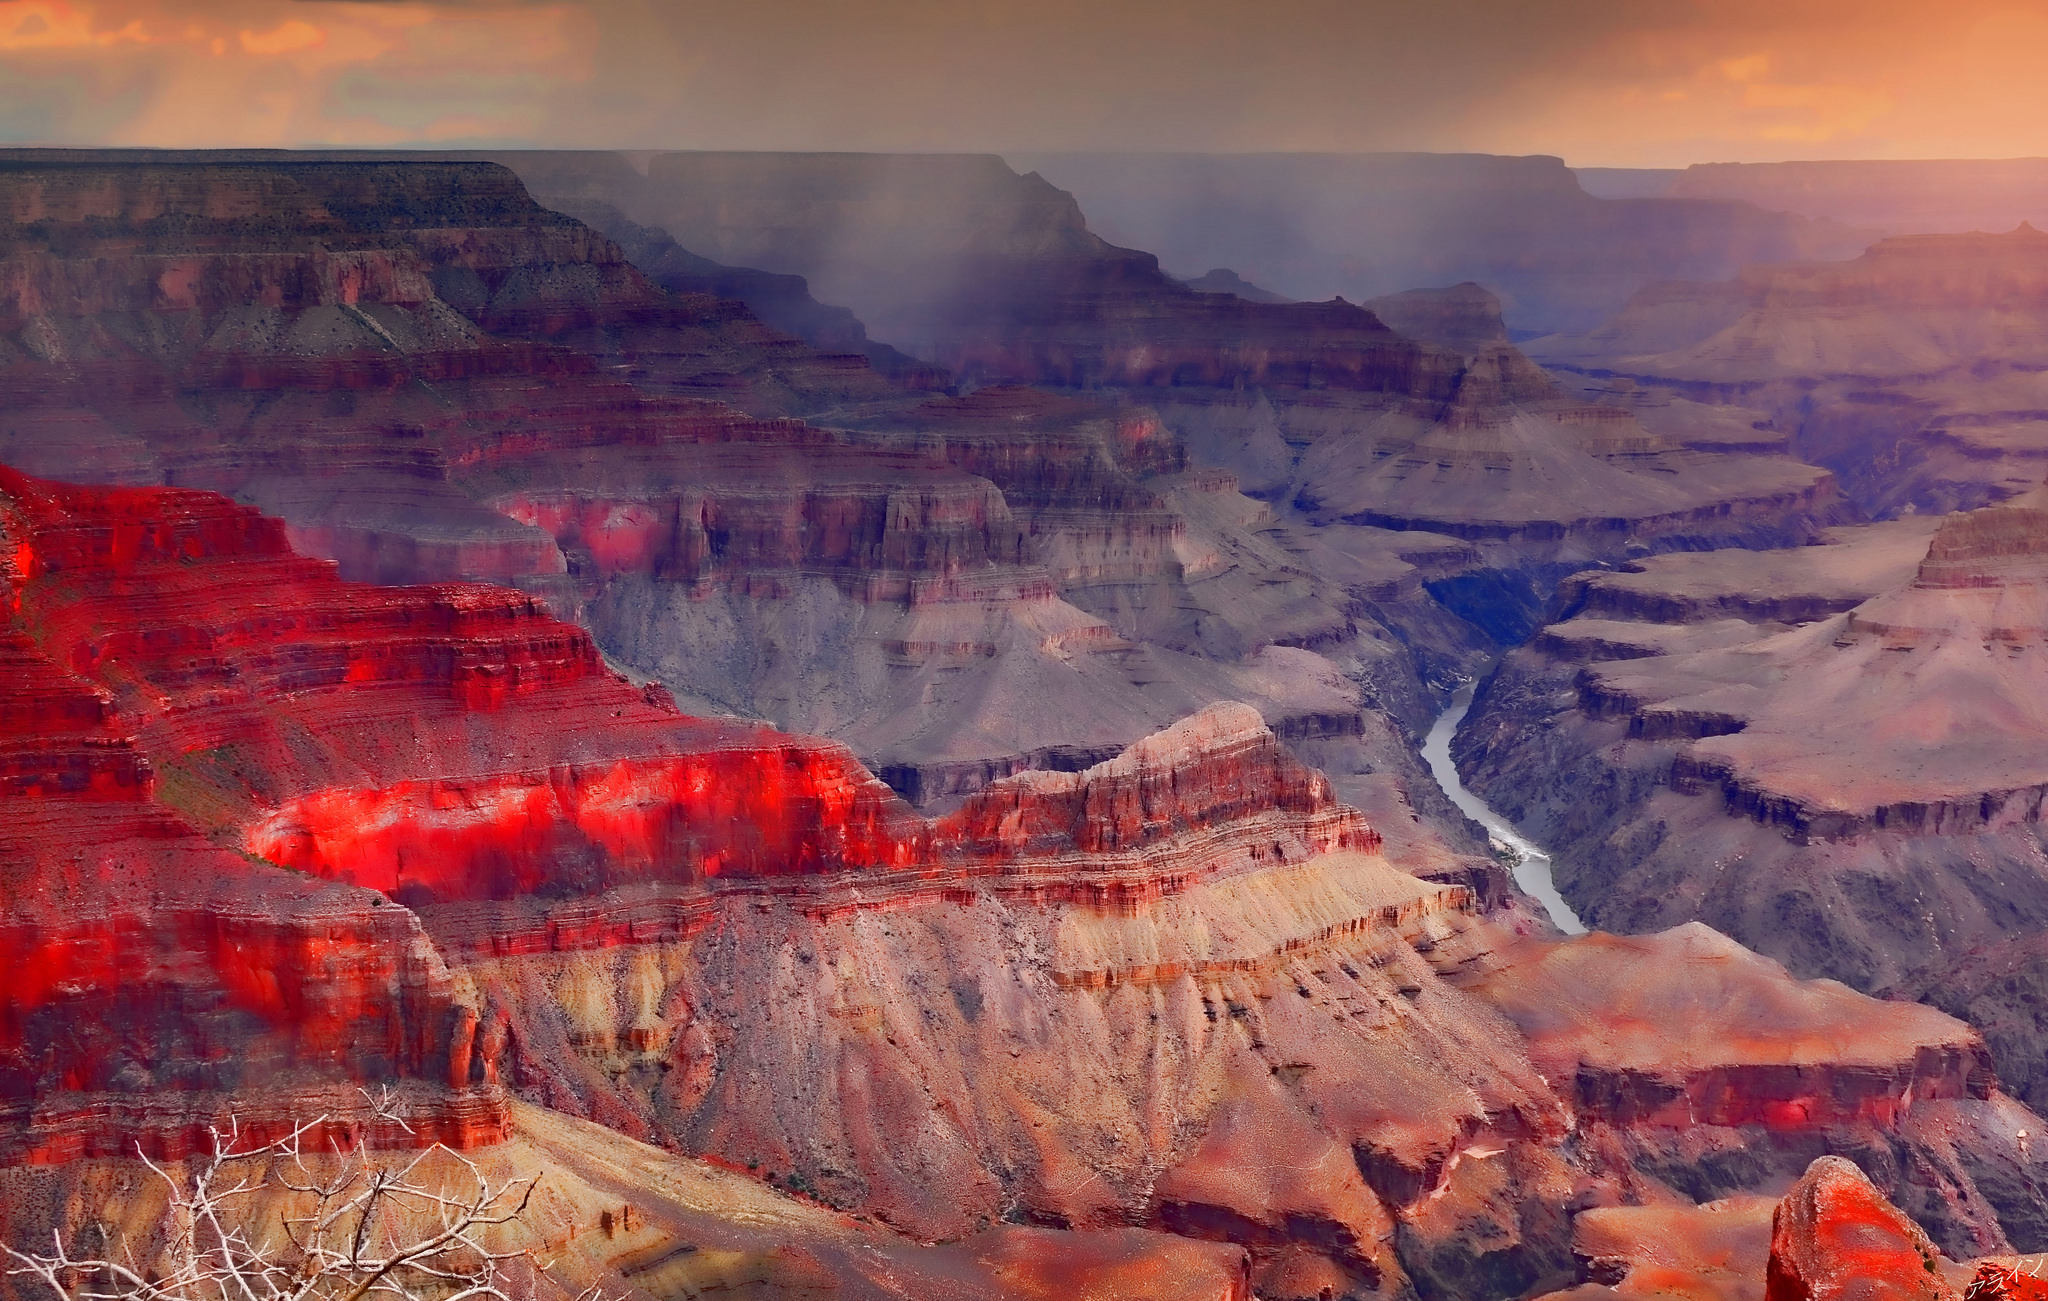 Alan E/ Flickr.    [Photo description: A misty, sunset-tinged view of the Grand Canyon from above.]